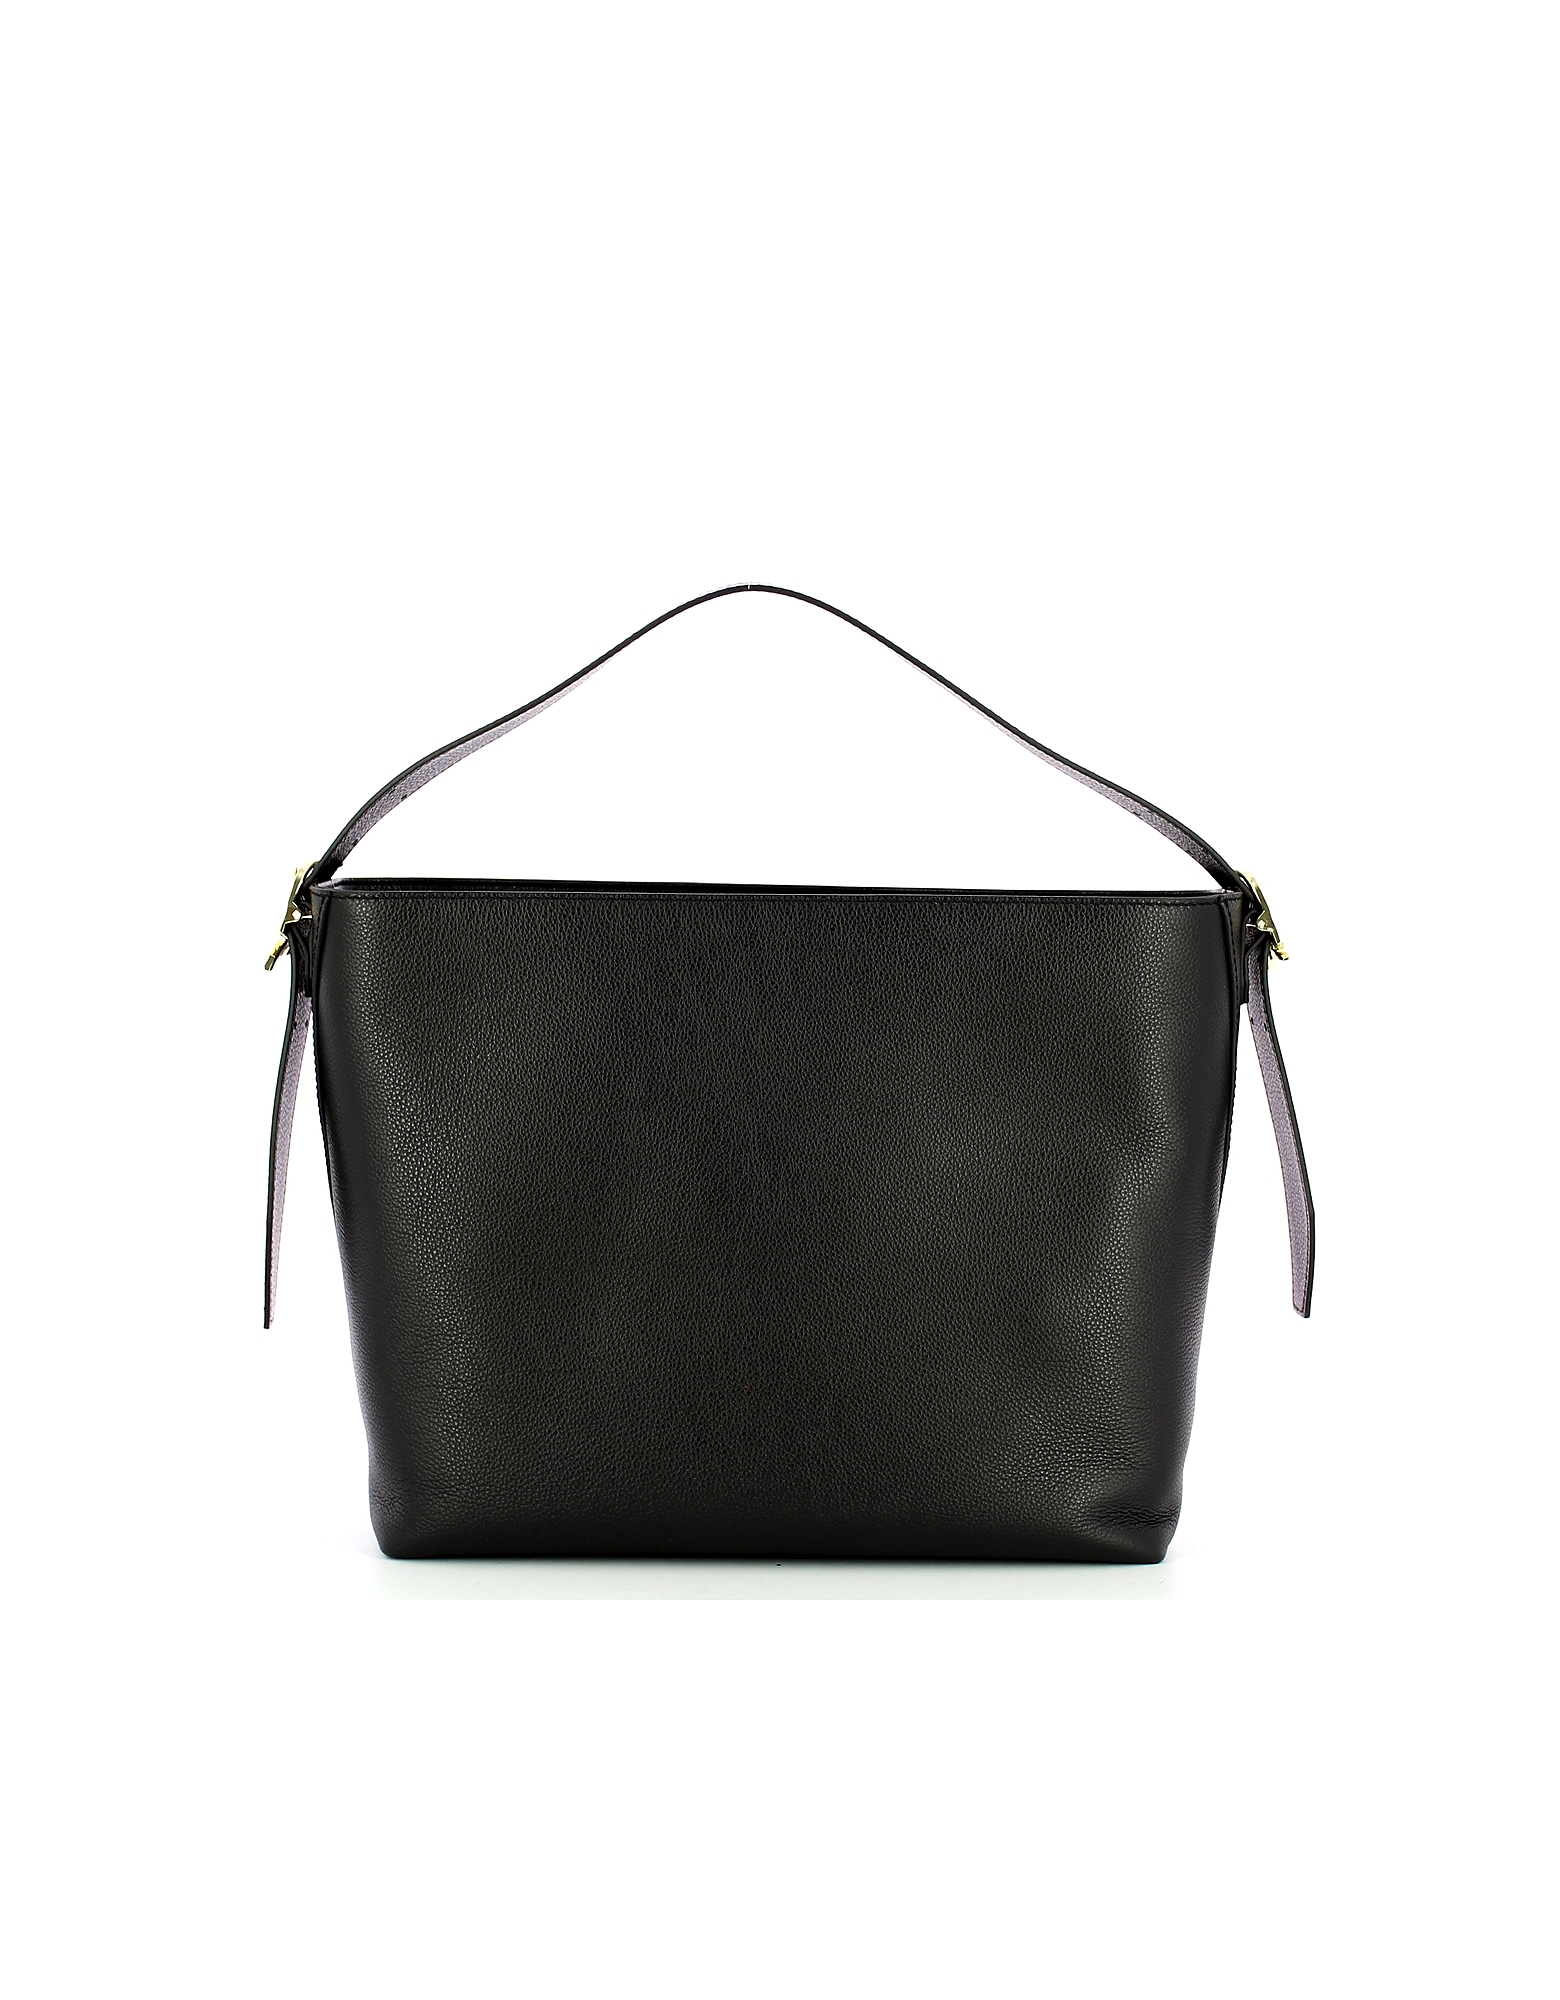 Patrizia Pepe Designer Handbags, Women's Black Bag